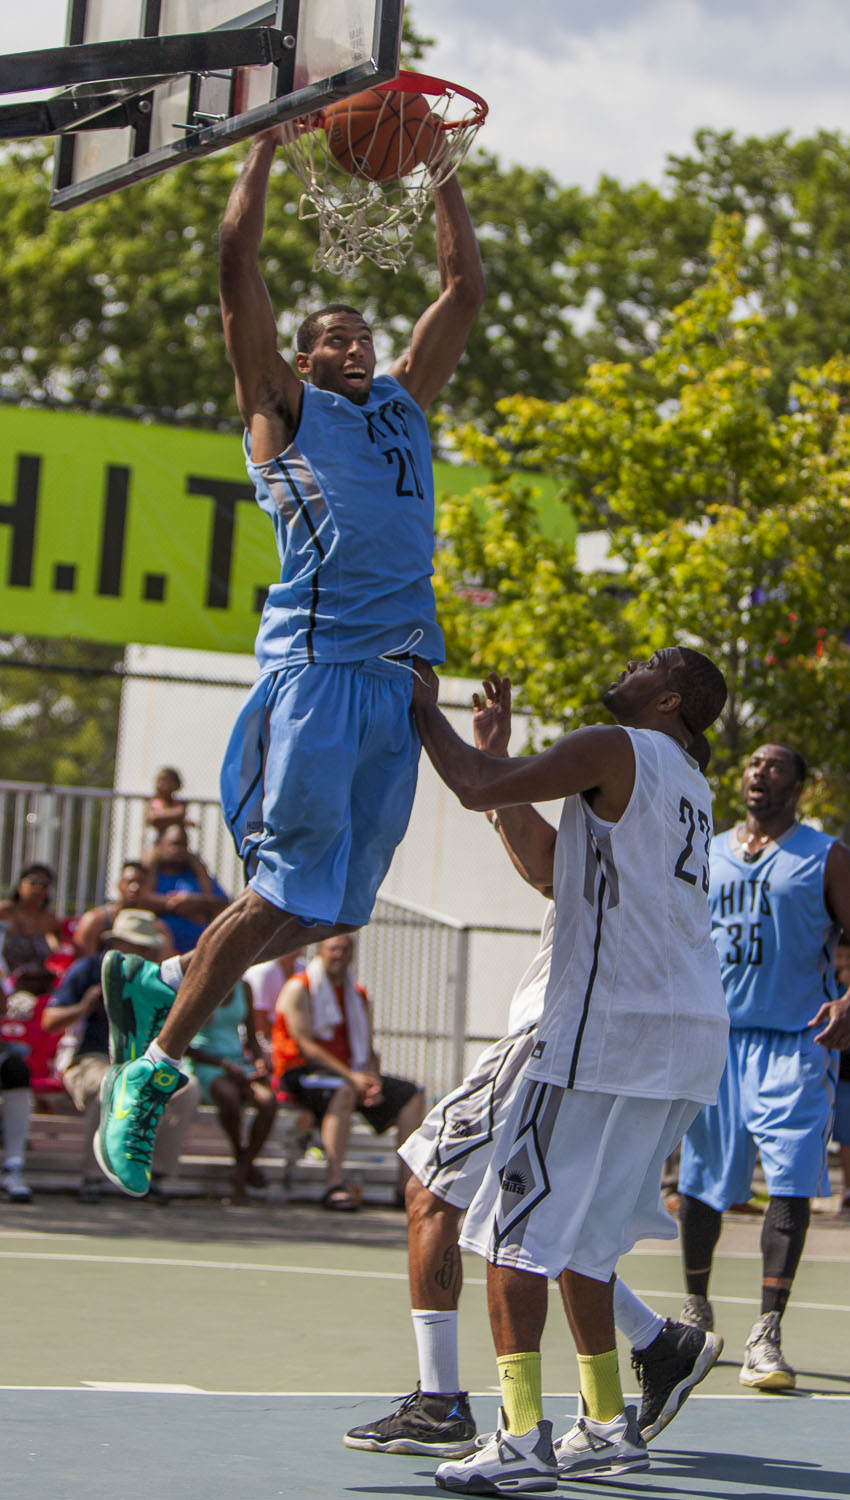 """Quinton """"T2"""" Hosley, who played for the storied 'Team Nike' last summer, rises for two of his 24 points for Skull Gang in a losing effort."""